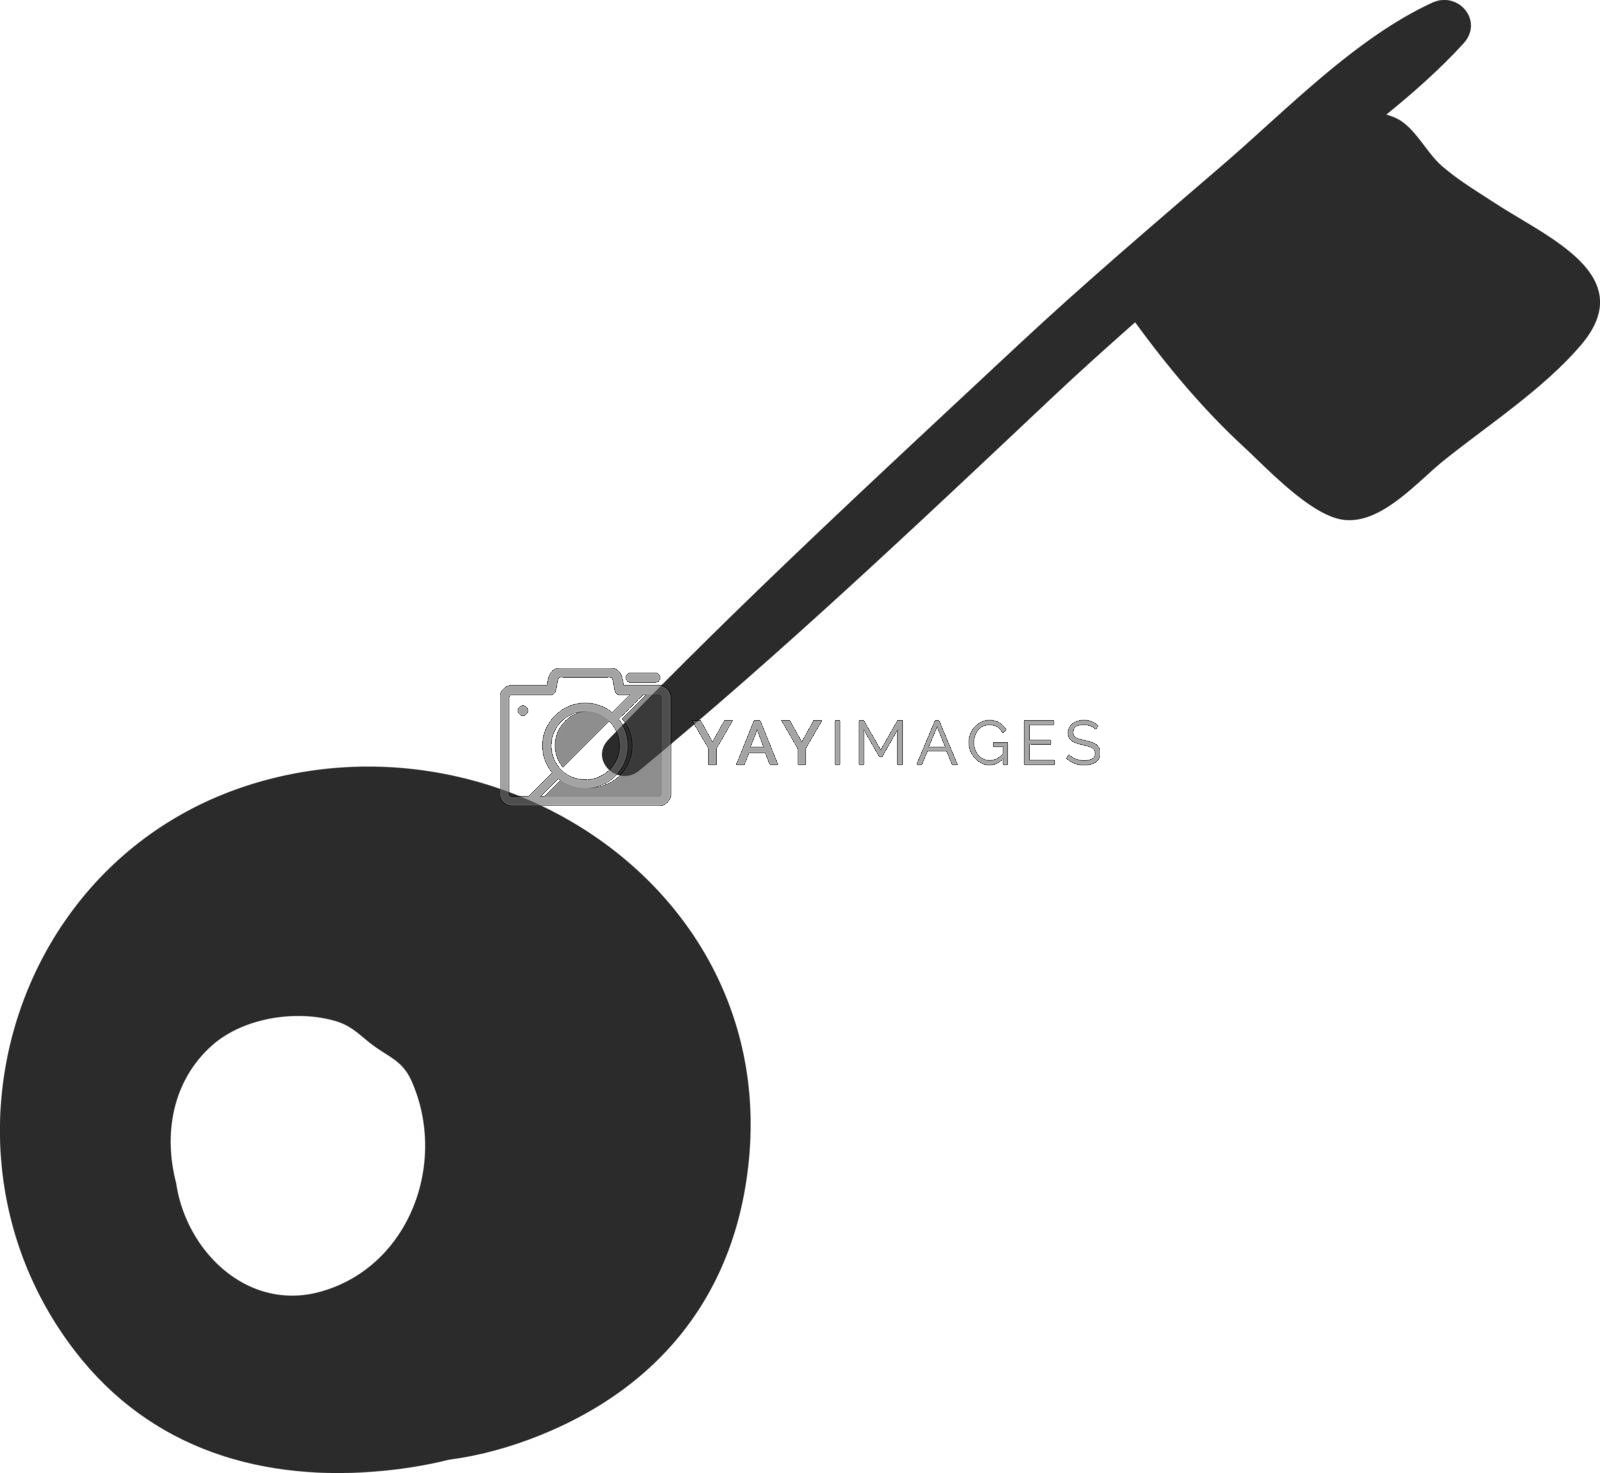 Royalty free image of Key icon/Black key vector or color illustration by Morphart